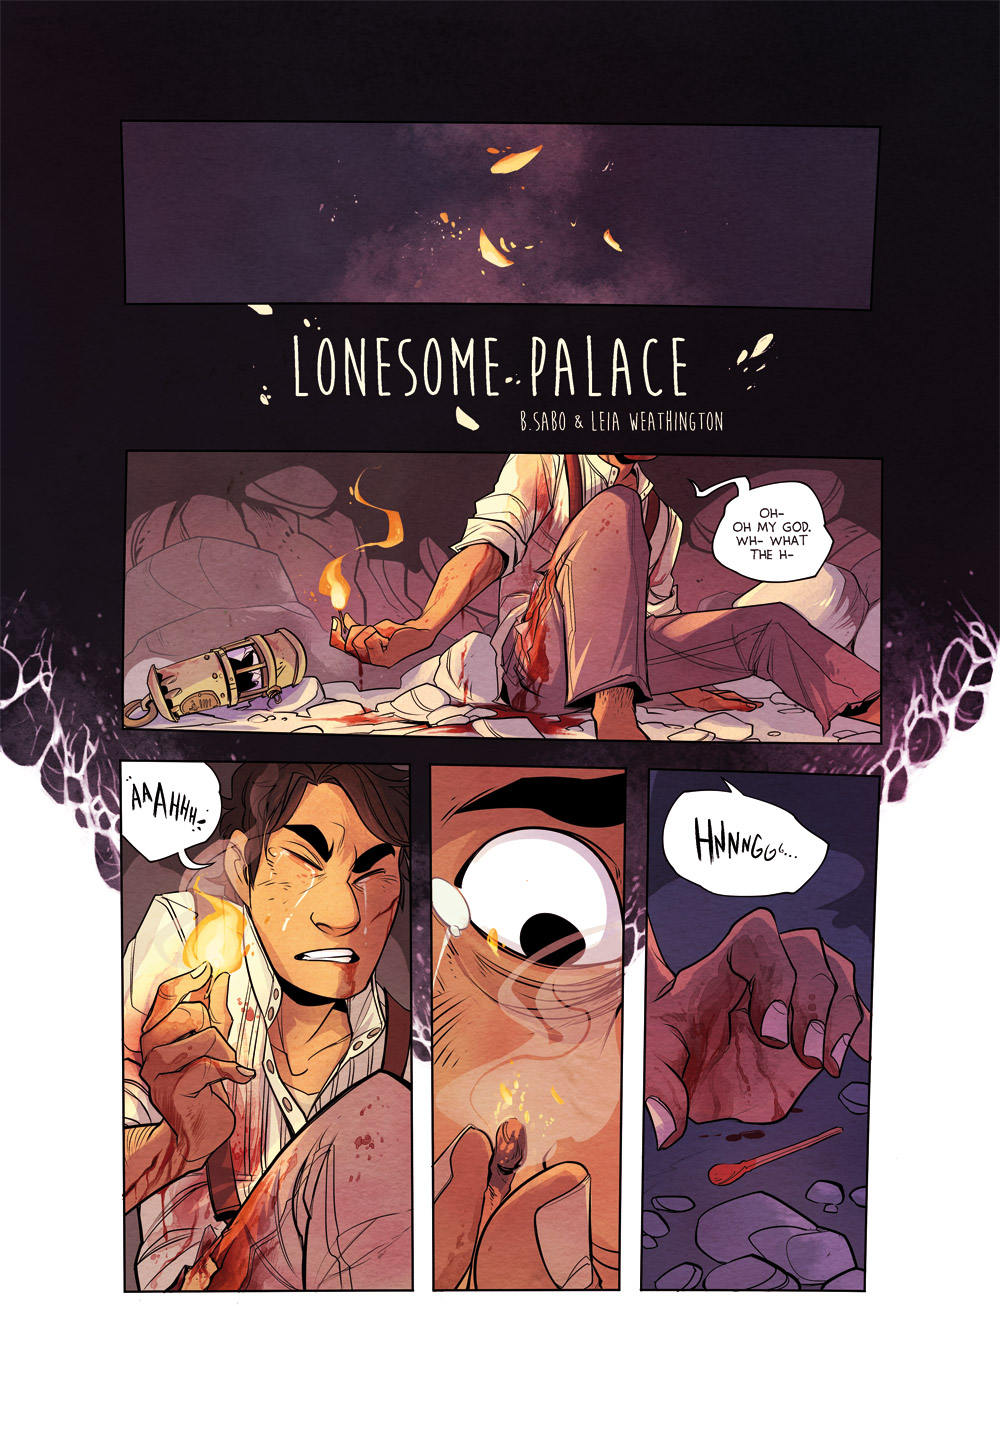 SMUTPED_LonesomePalaces_Page01.jpg